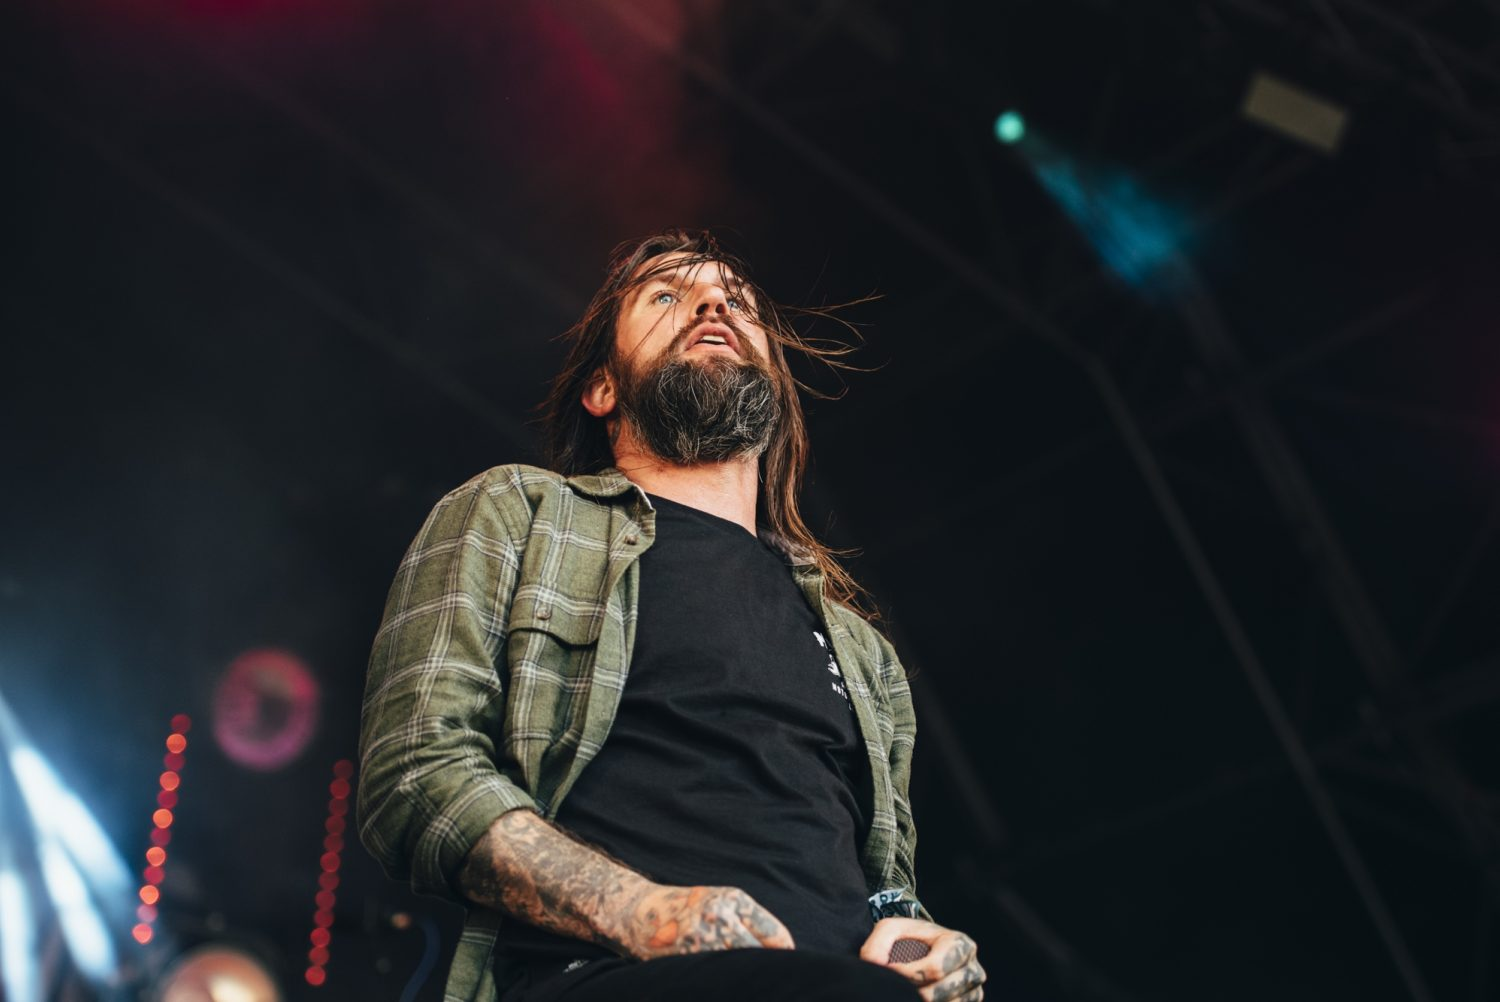 Every Time I Die played a huge set at 2000trees 2019